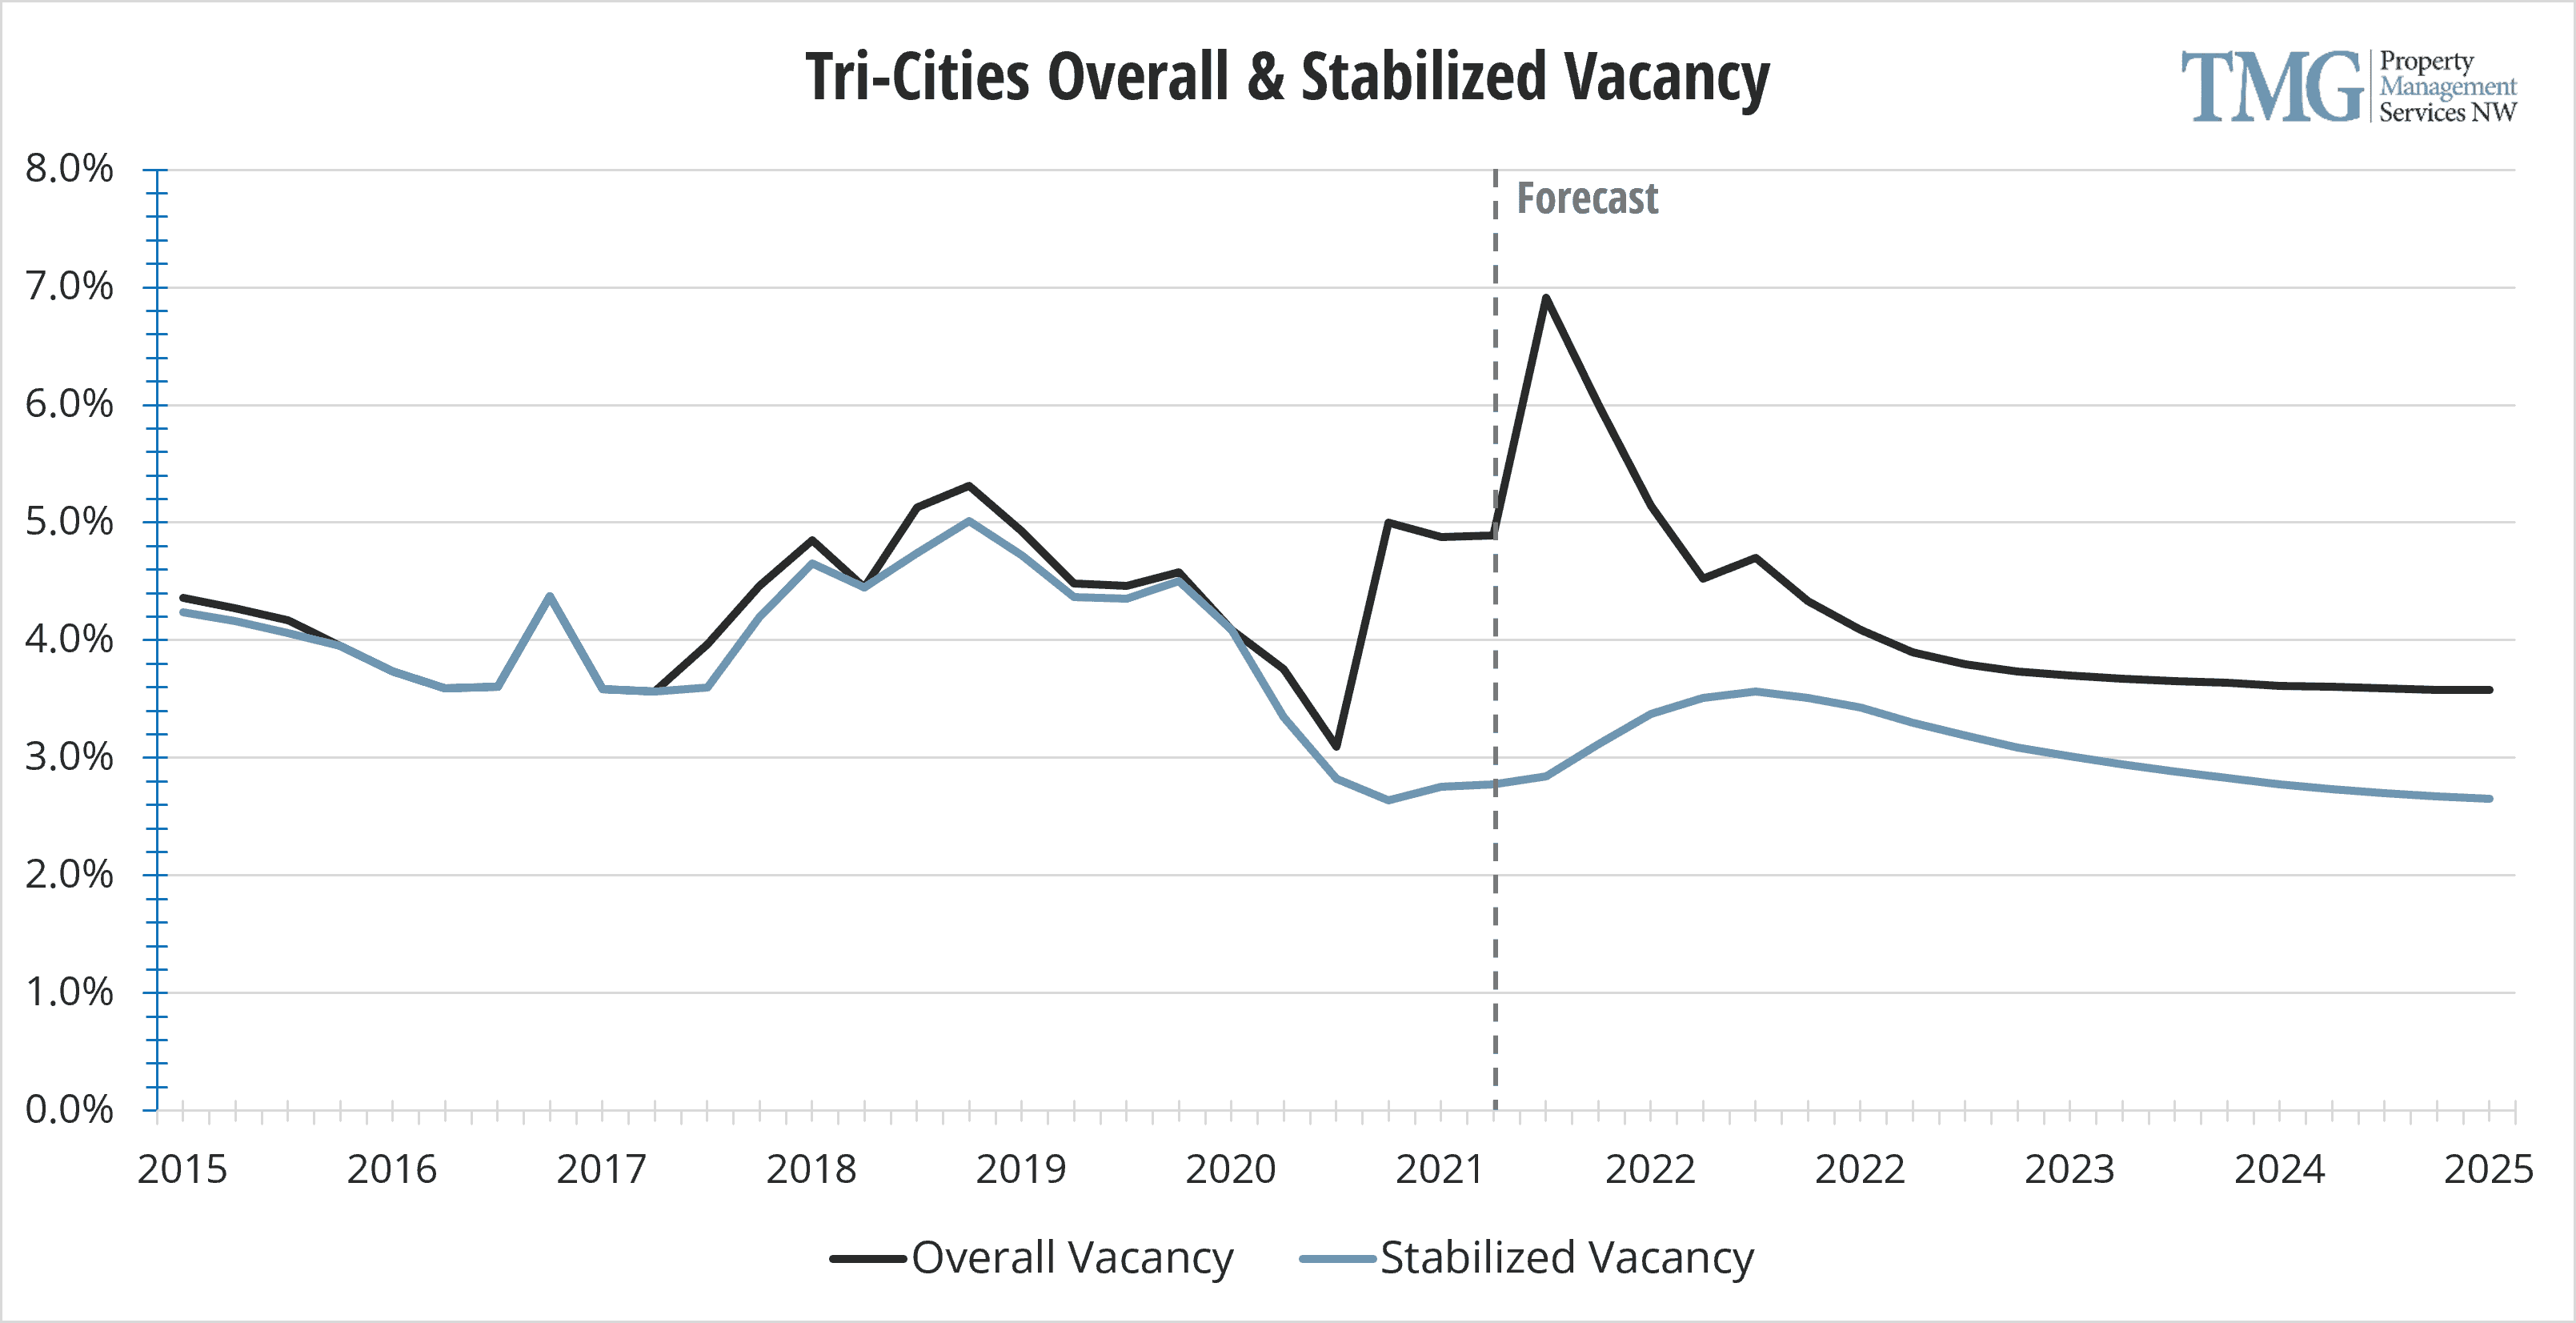 Tri-Cities Q1 2021 Overall & Stabilized Vacancy